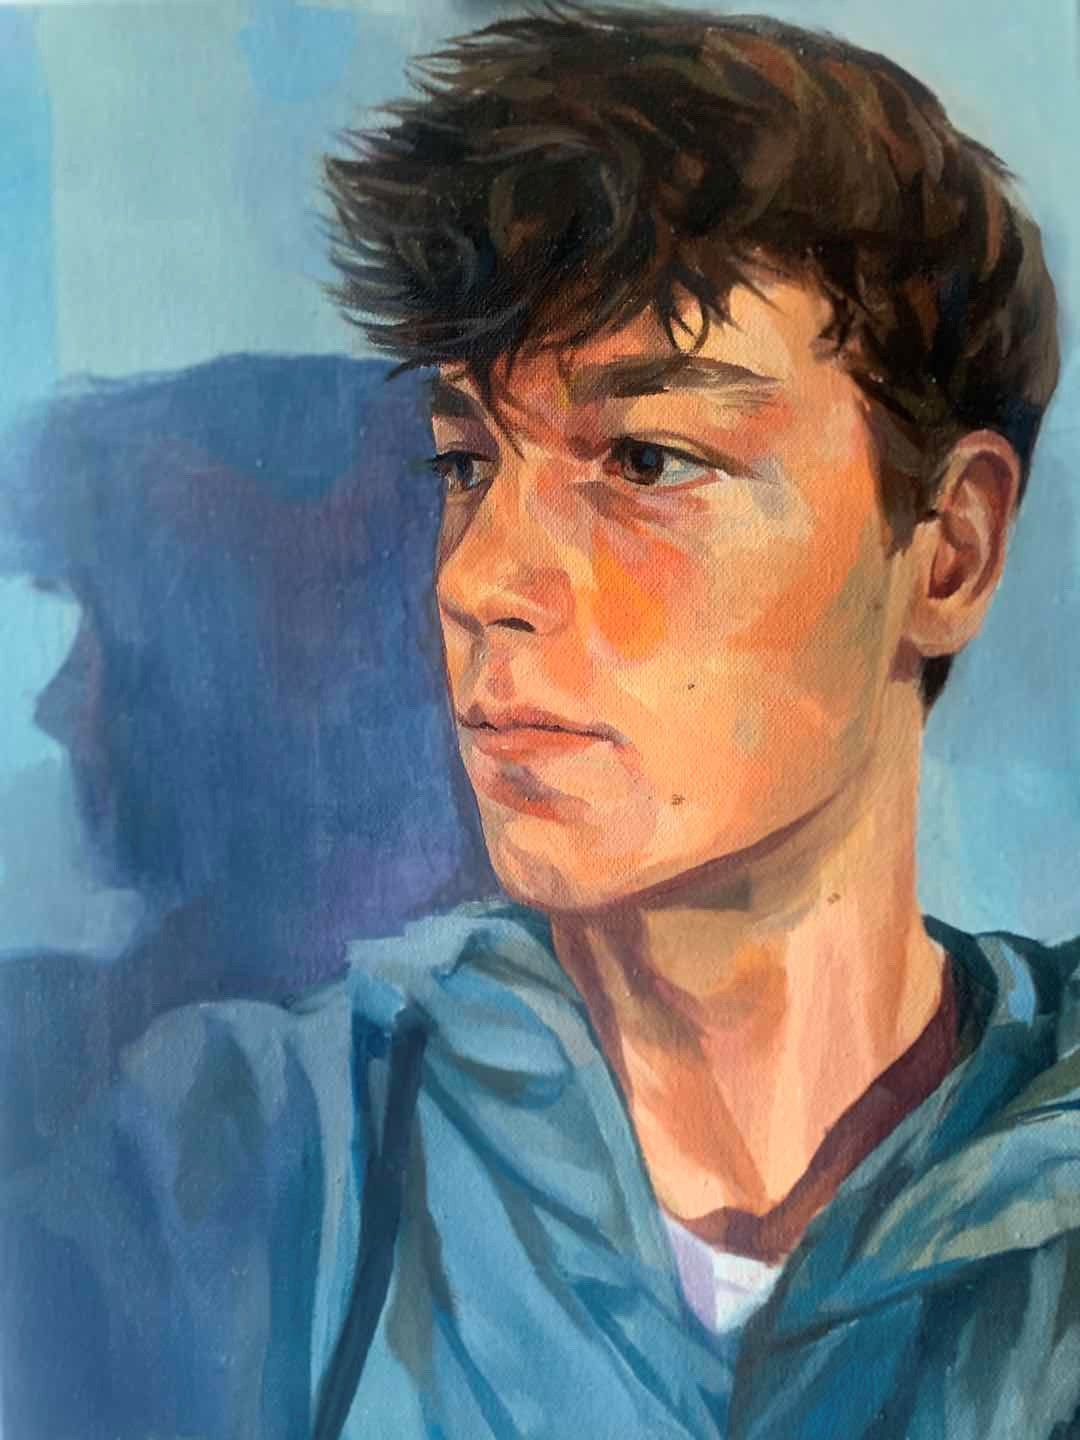 The Boy In Boy by Rachel Chen - Texaco Art Comp 2020